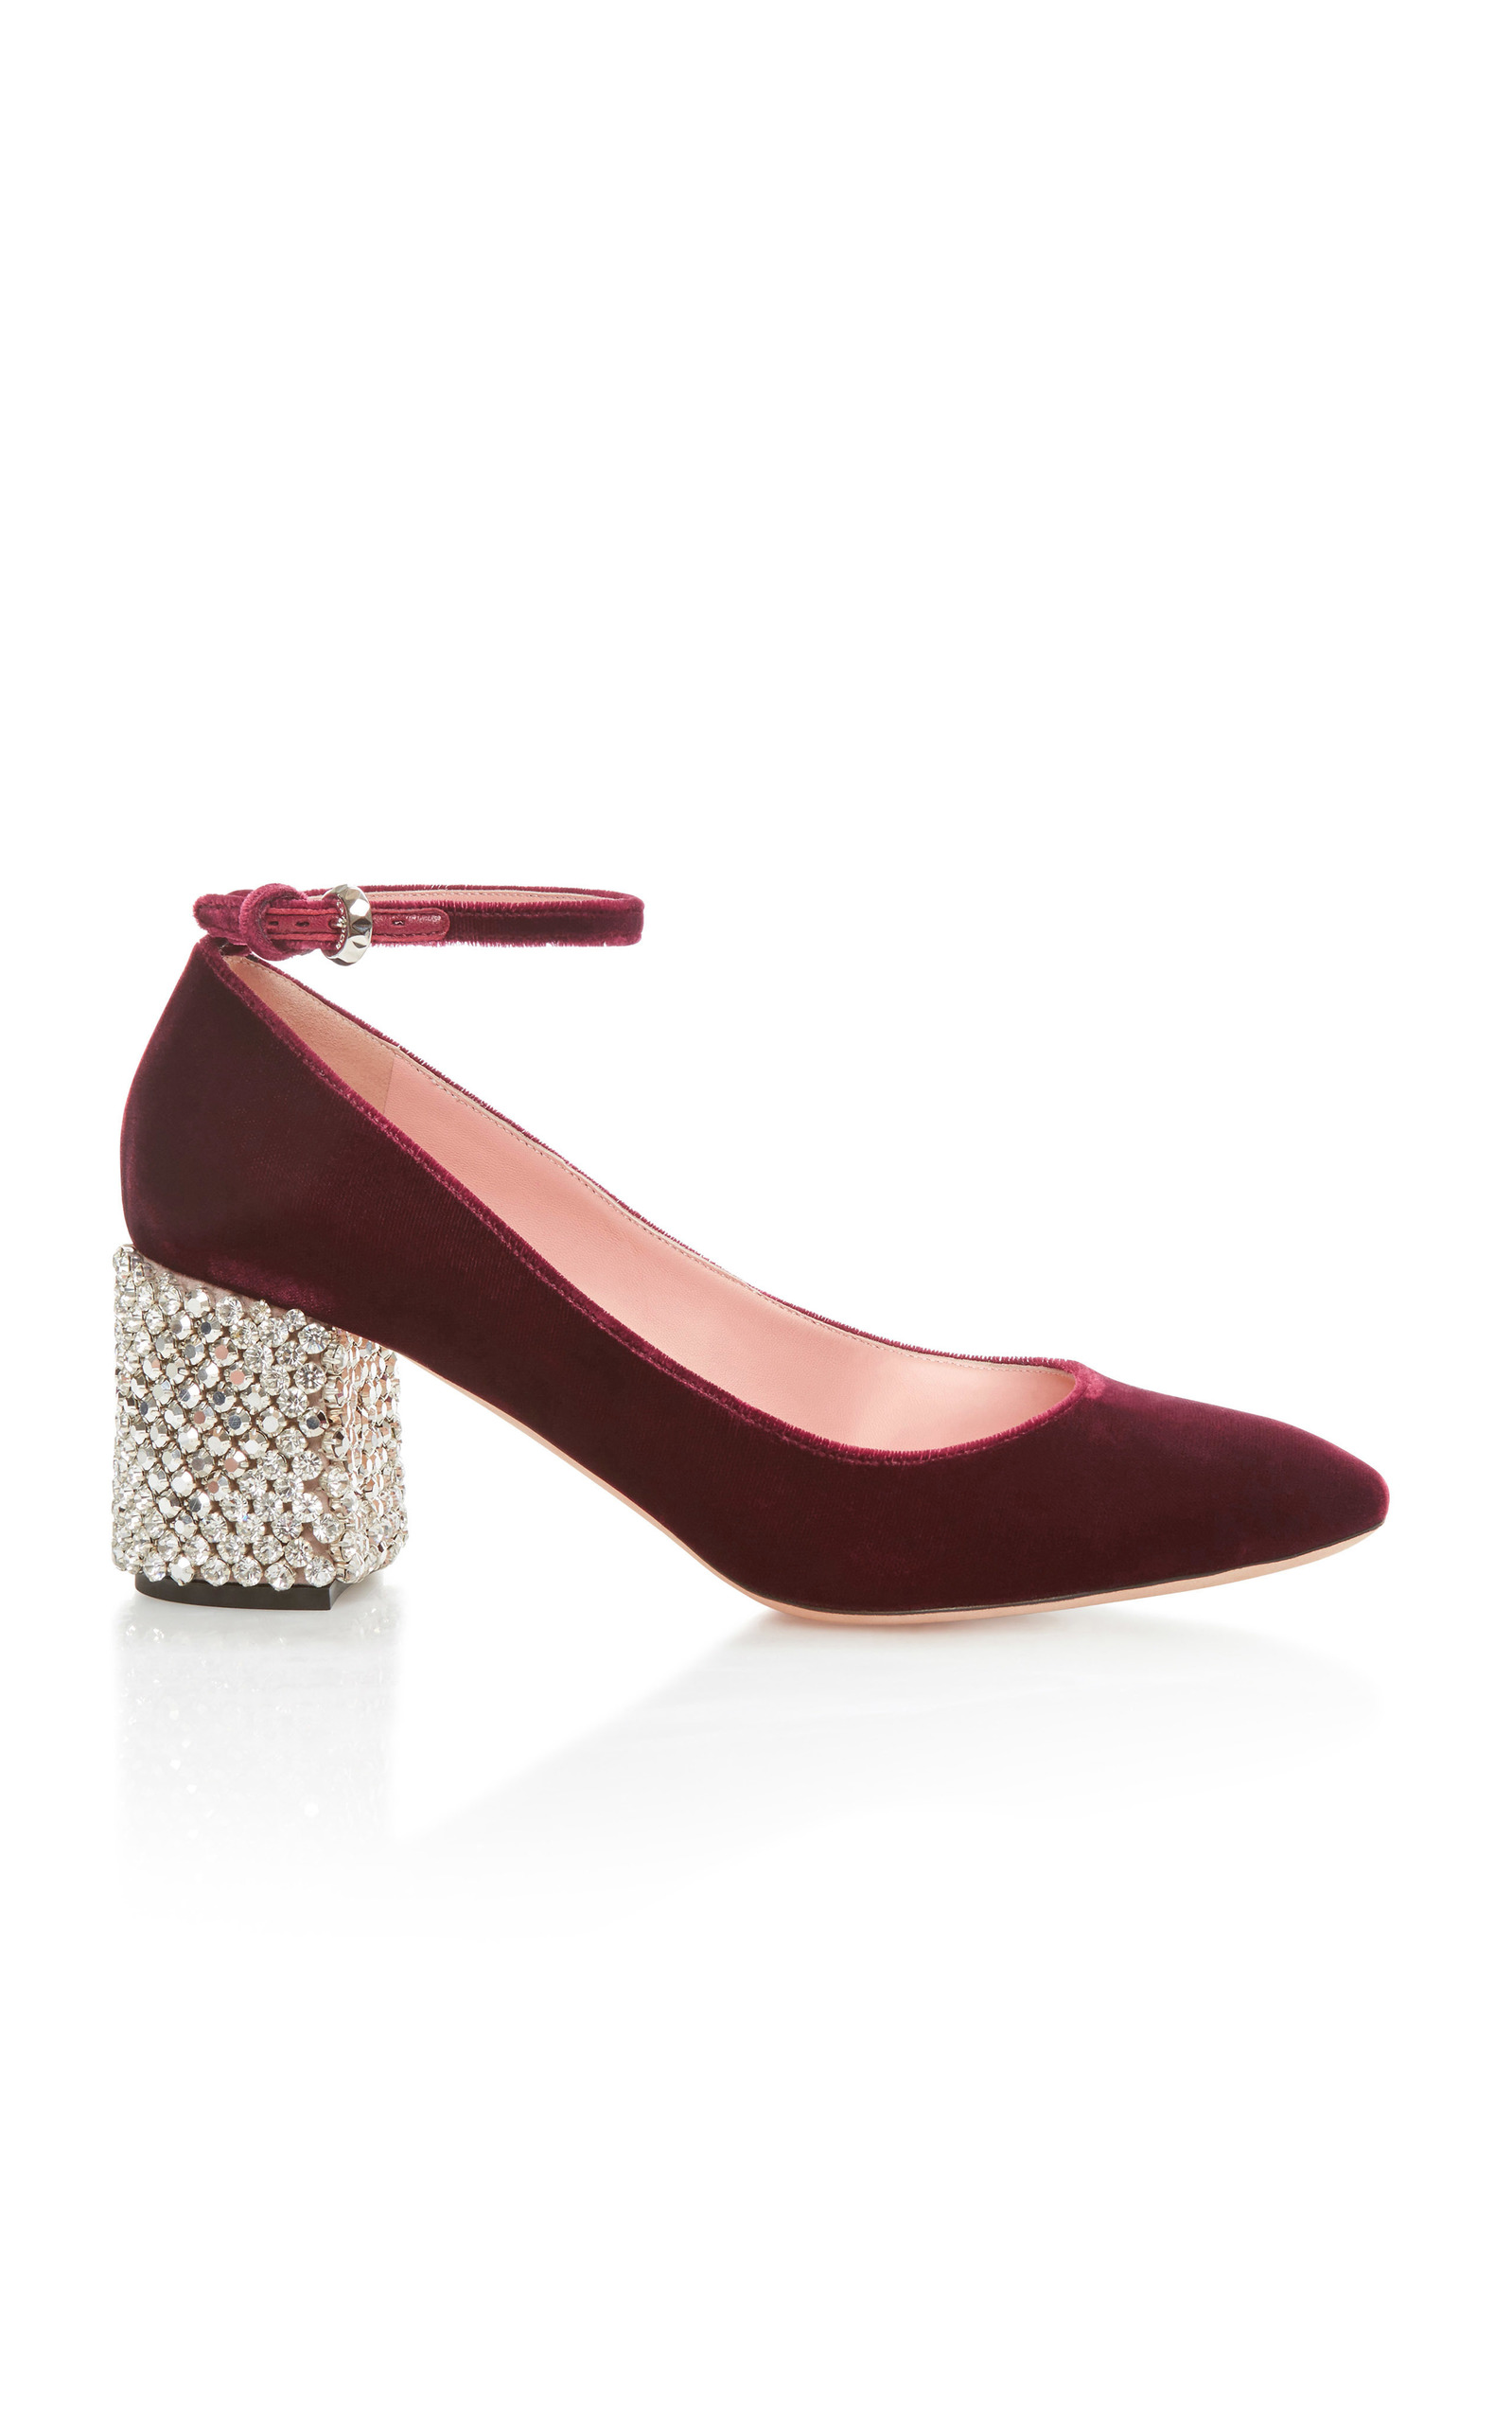 ROCHAS MARY JANE WITH EMBELLISHED HEEL